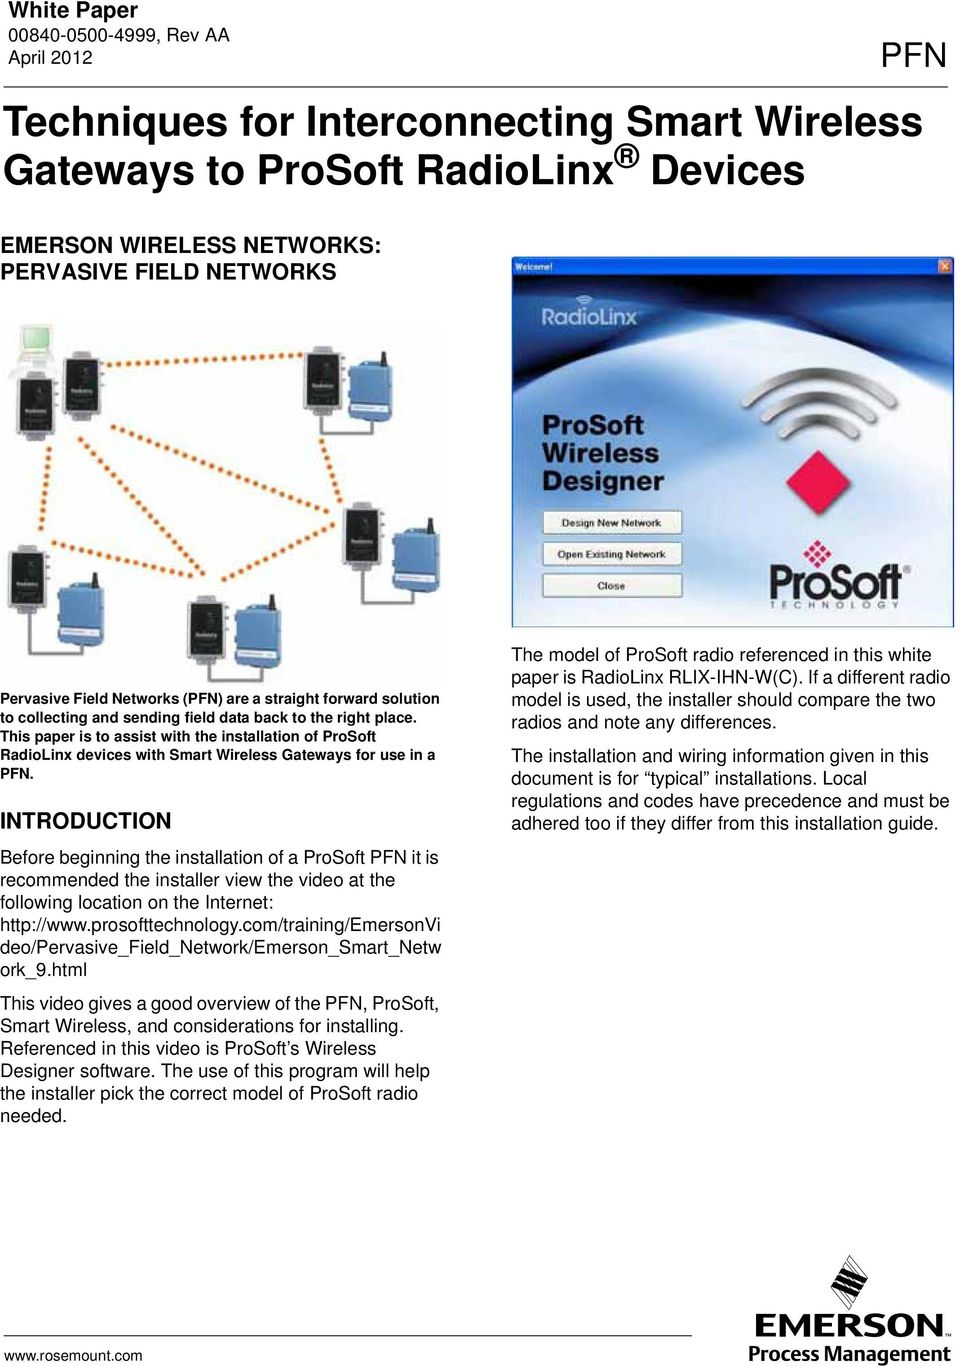 Techniques For Interconnecting Smart Wireless Gateways To Prosoft Poweroverethernet Poe On Industrialbased Networking Fig 2 Introduction Before Beginning The Installation Of A Pfn It Is Recommended Installer View